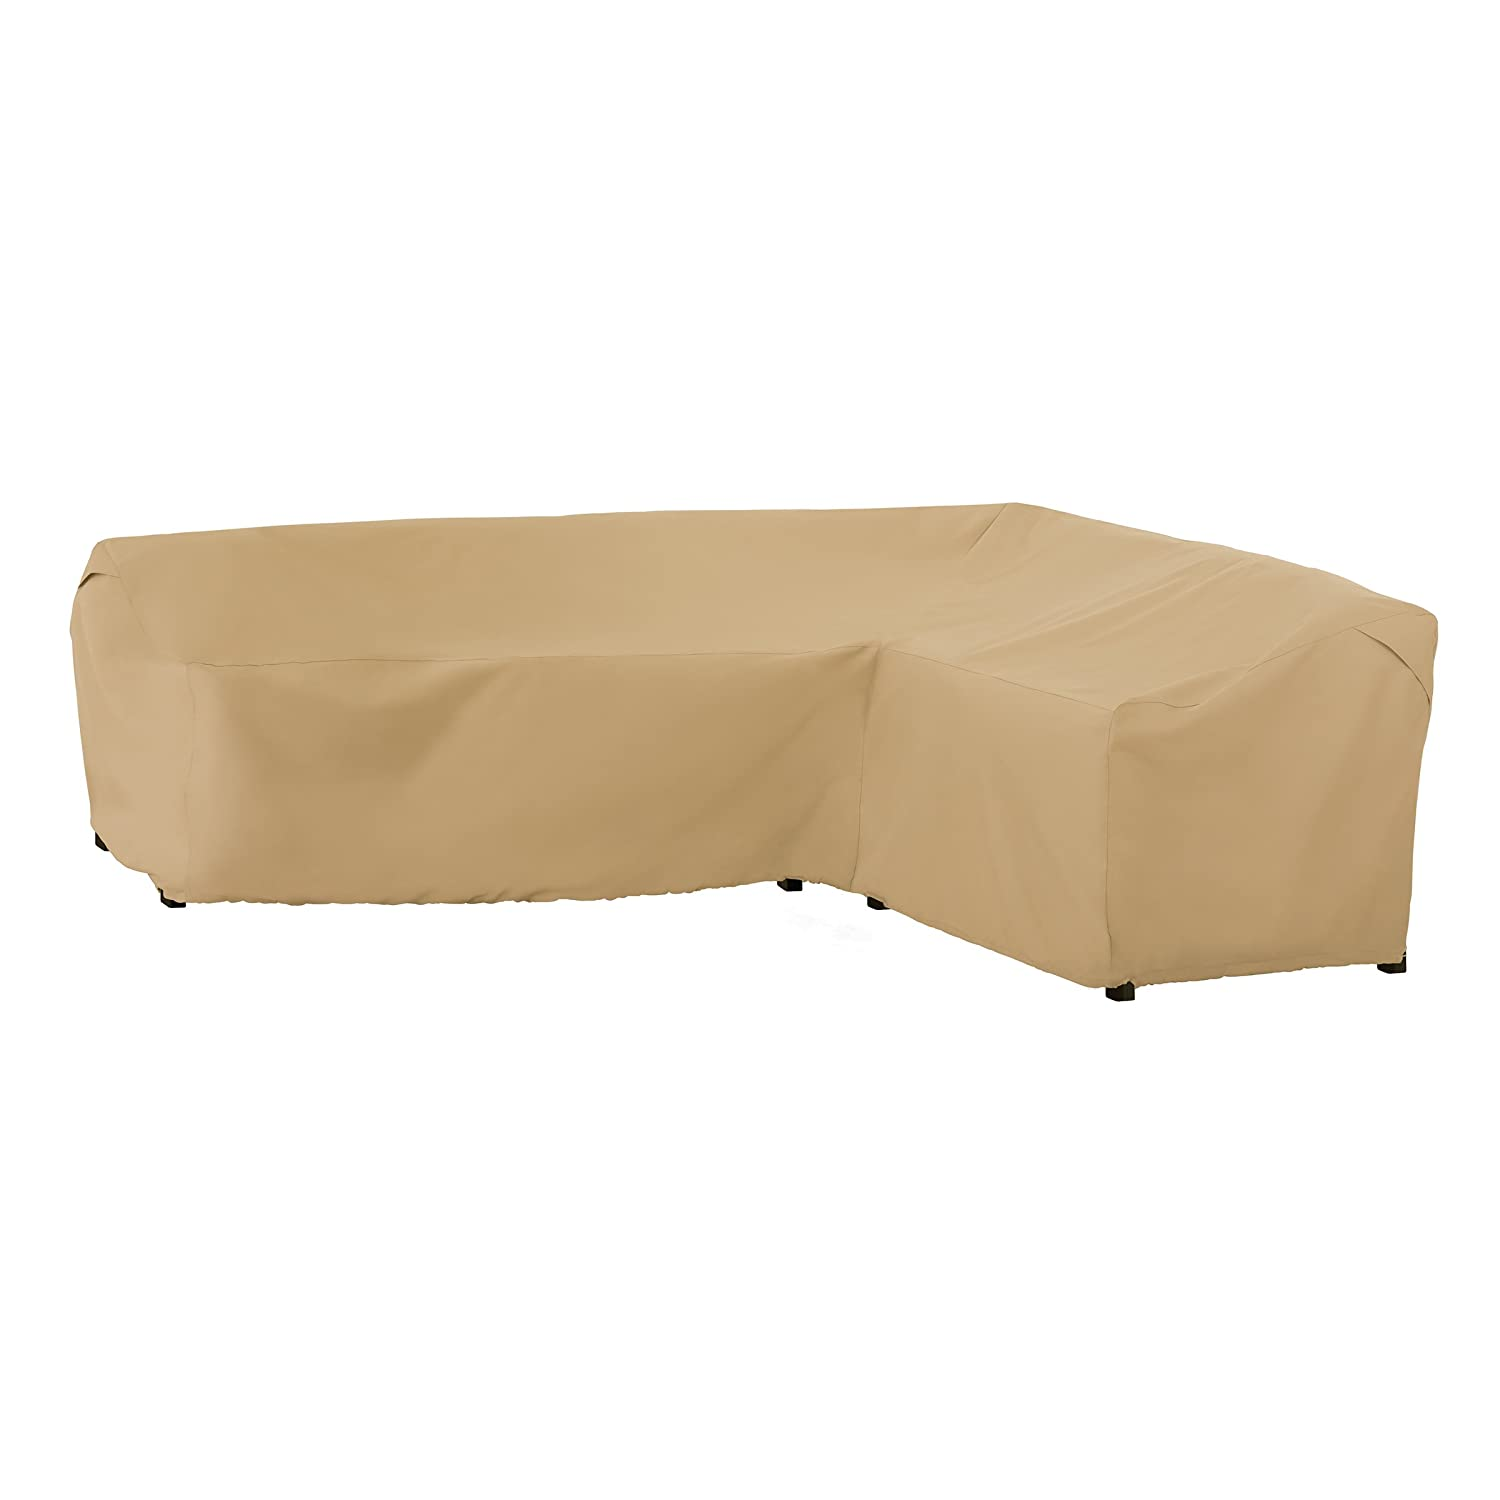 Classic Accessories Terrazzo Patio L-Shaped Sectional Sofa Cover, Right Facing